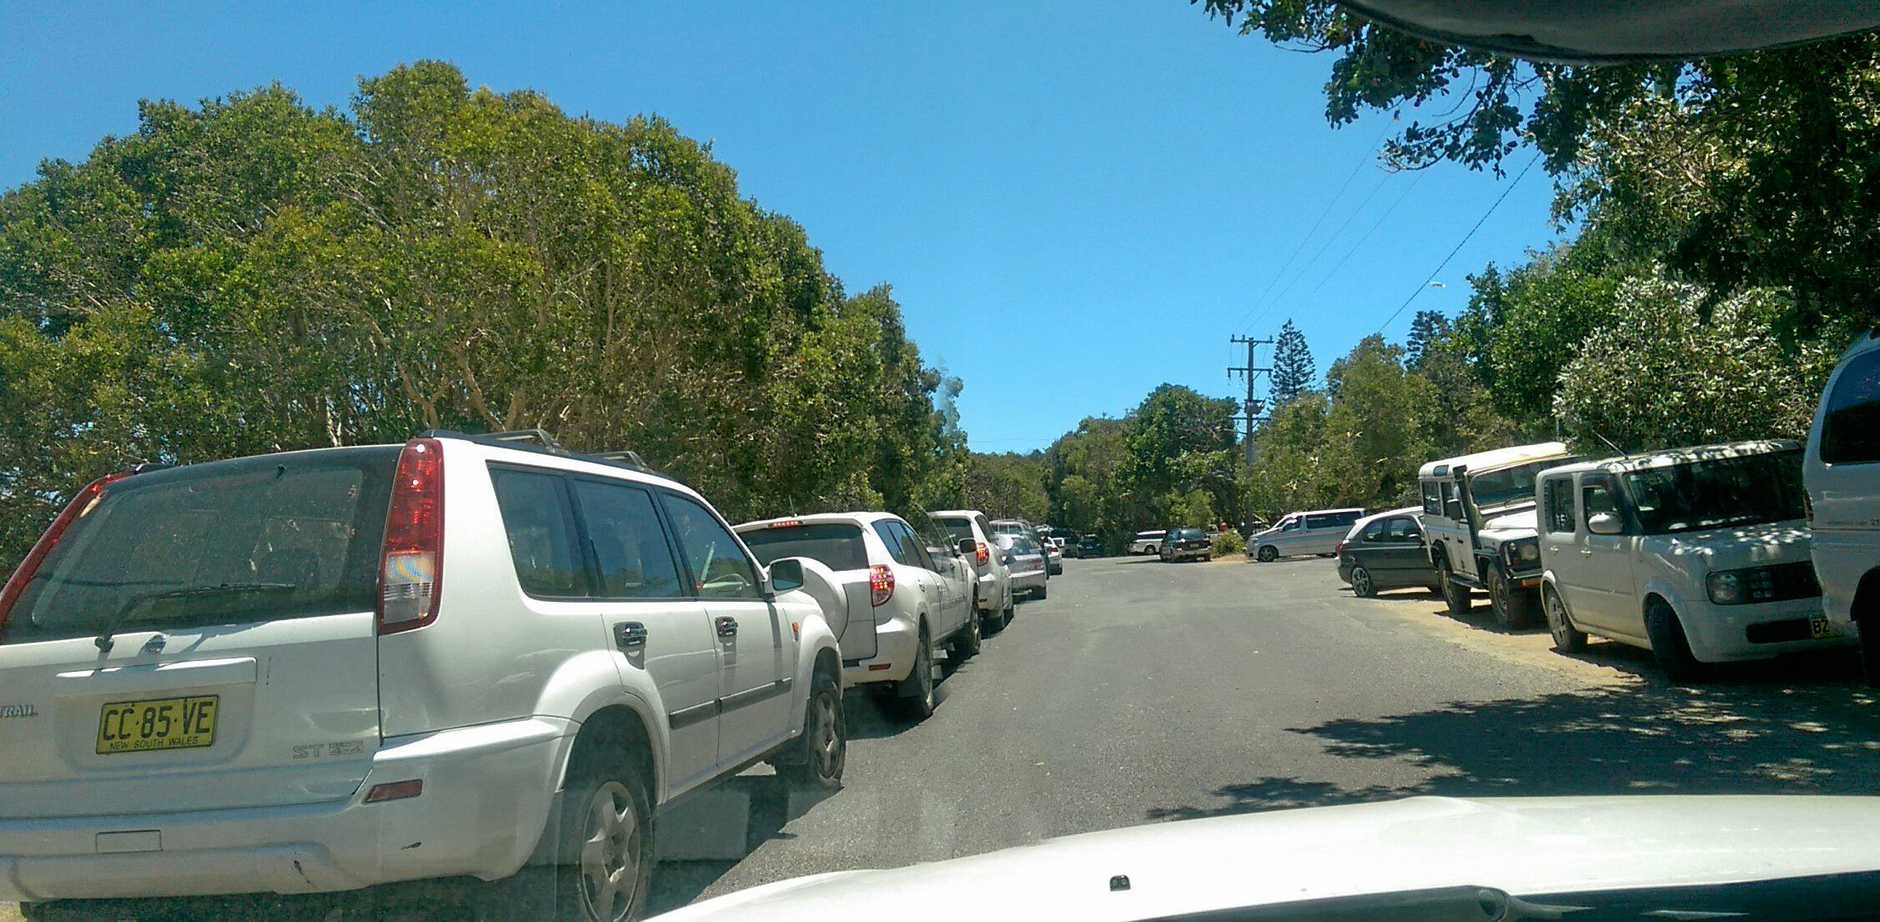 Ballina Shire Council will prepare a report on options to prevent guests at the Lennox Head caravan park taking up the public car parking spaces near Lake Ainsworth.